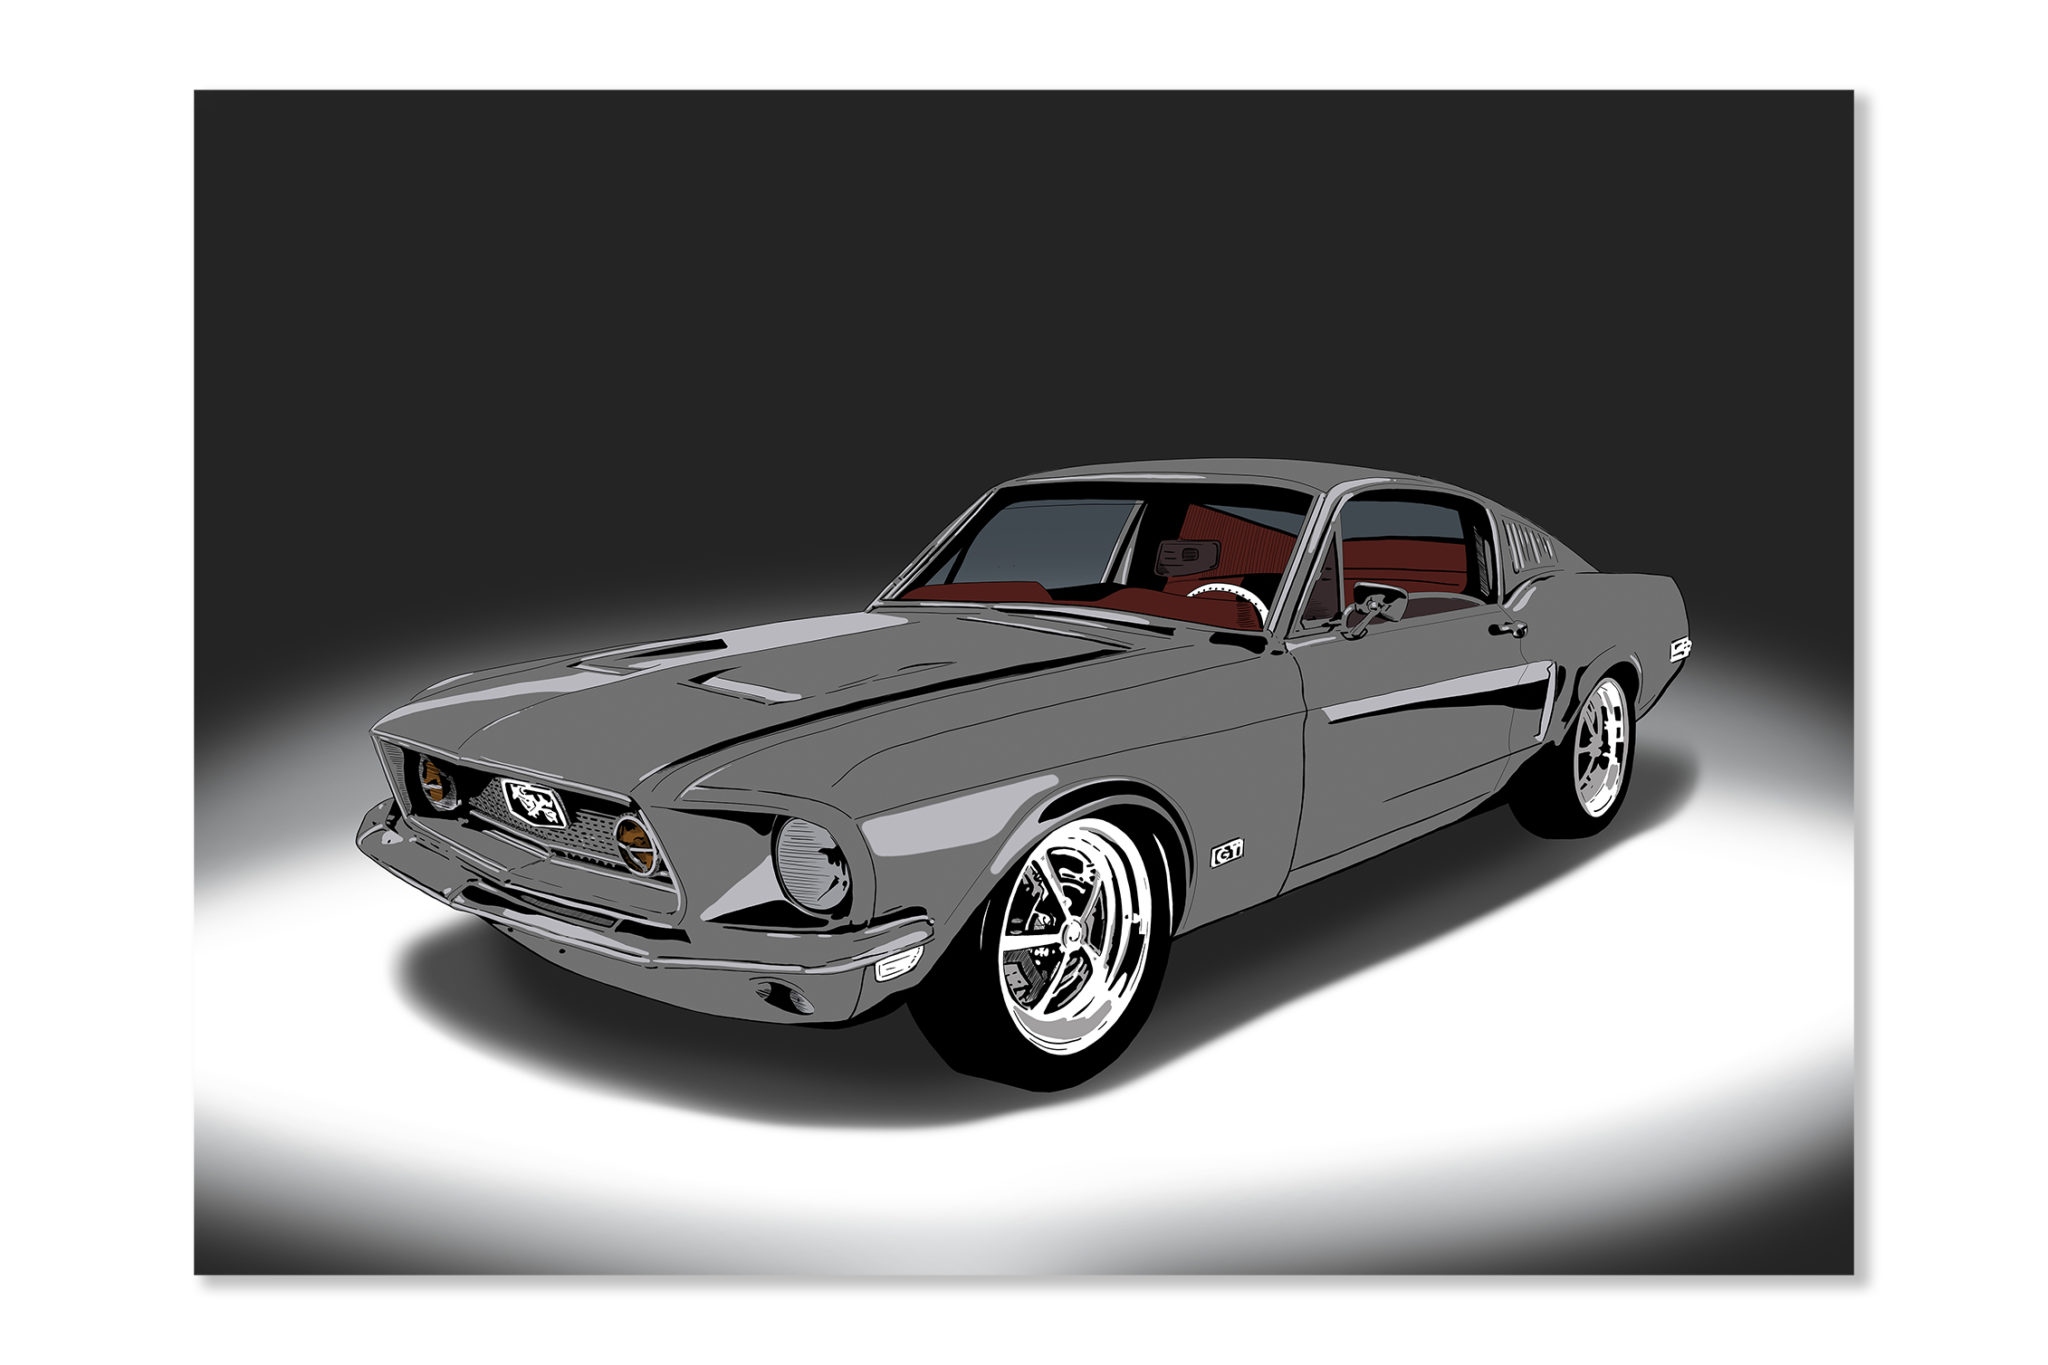 Ford Mustang plakat